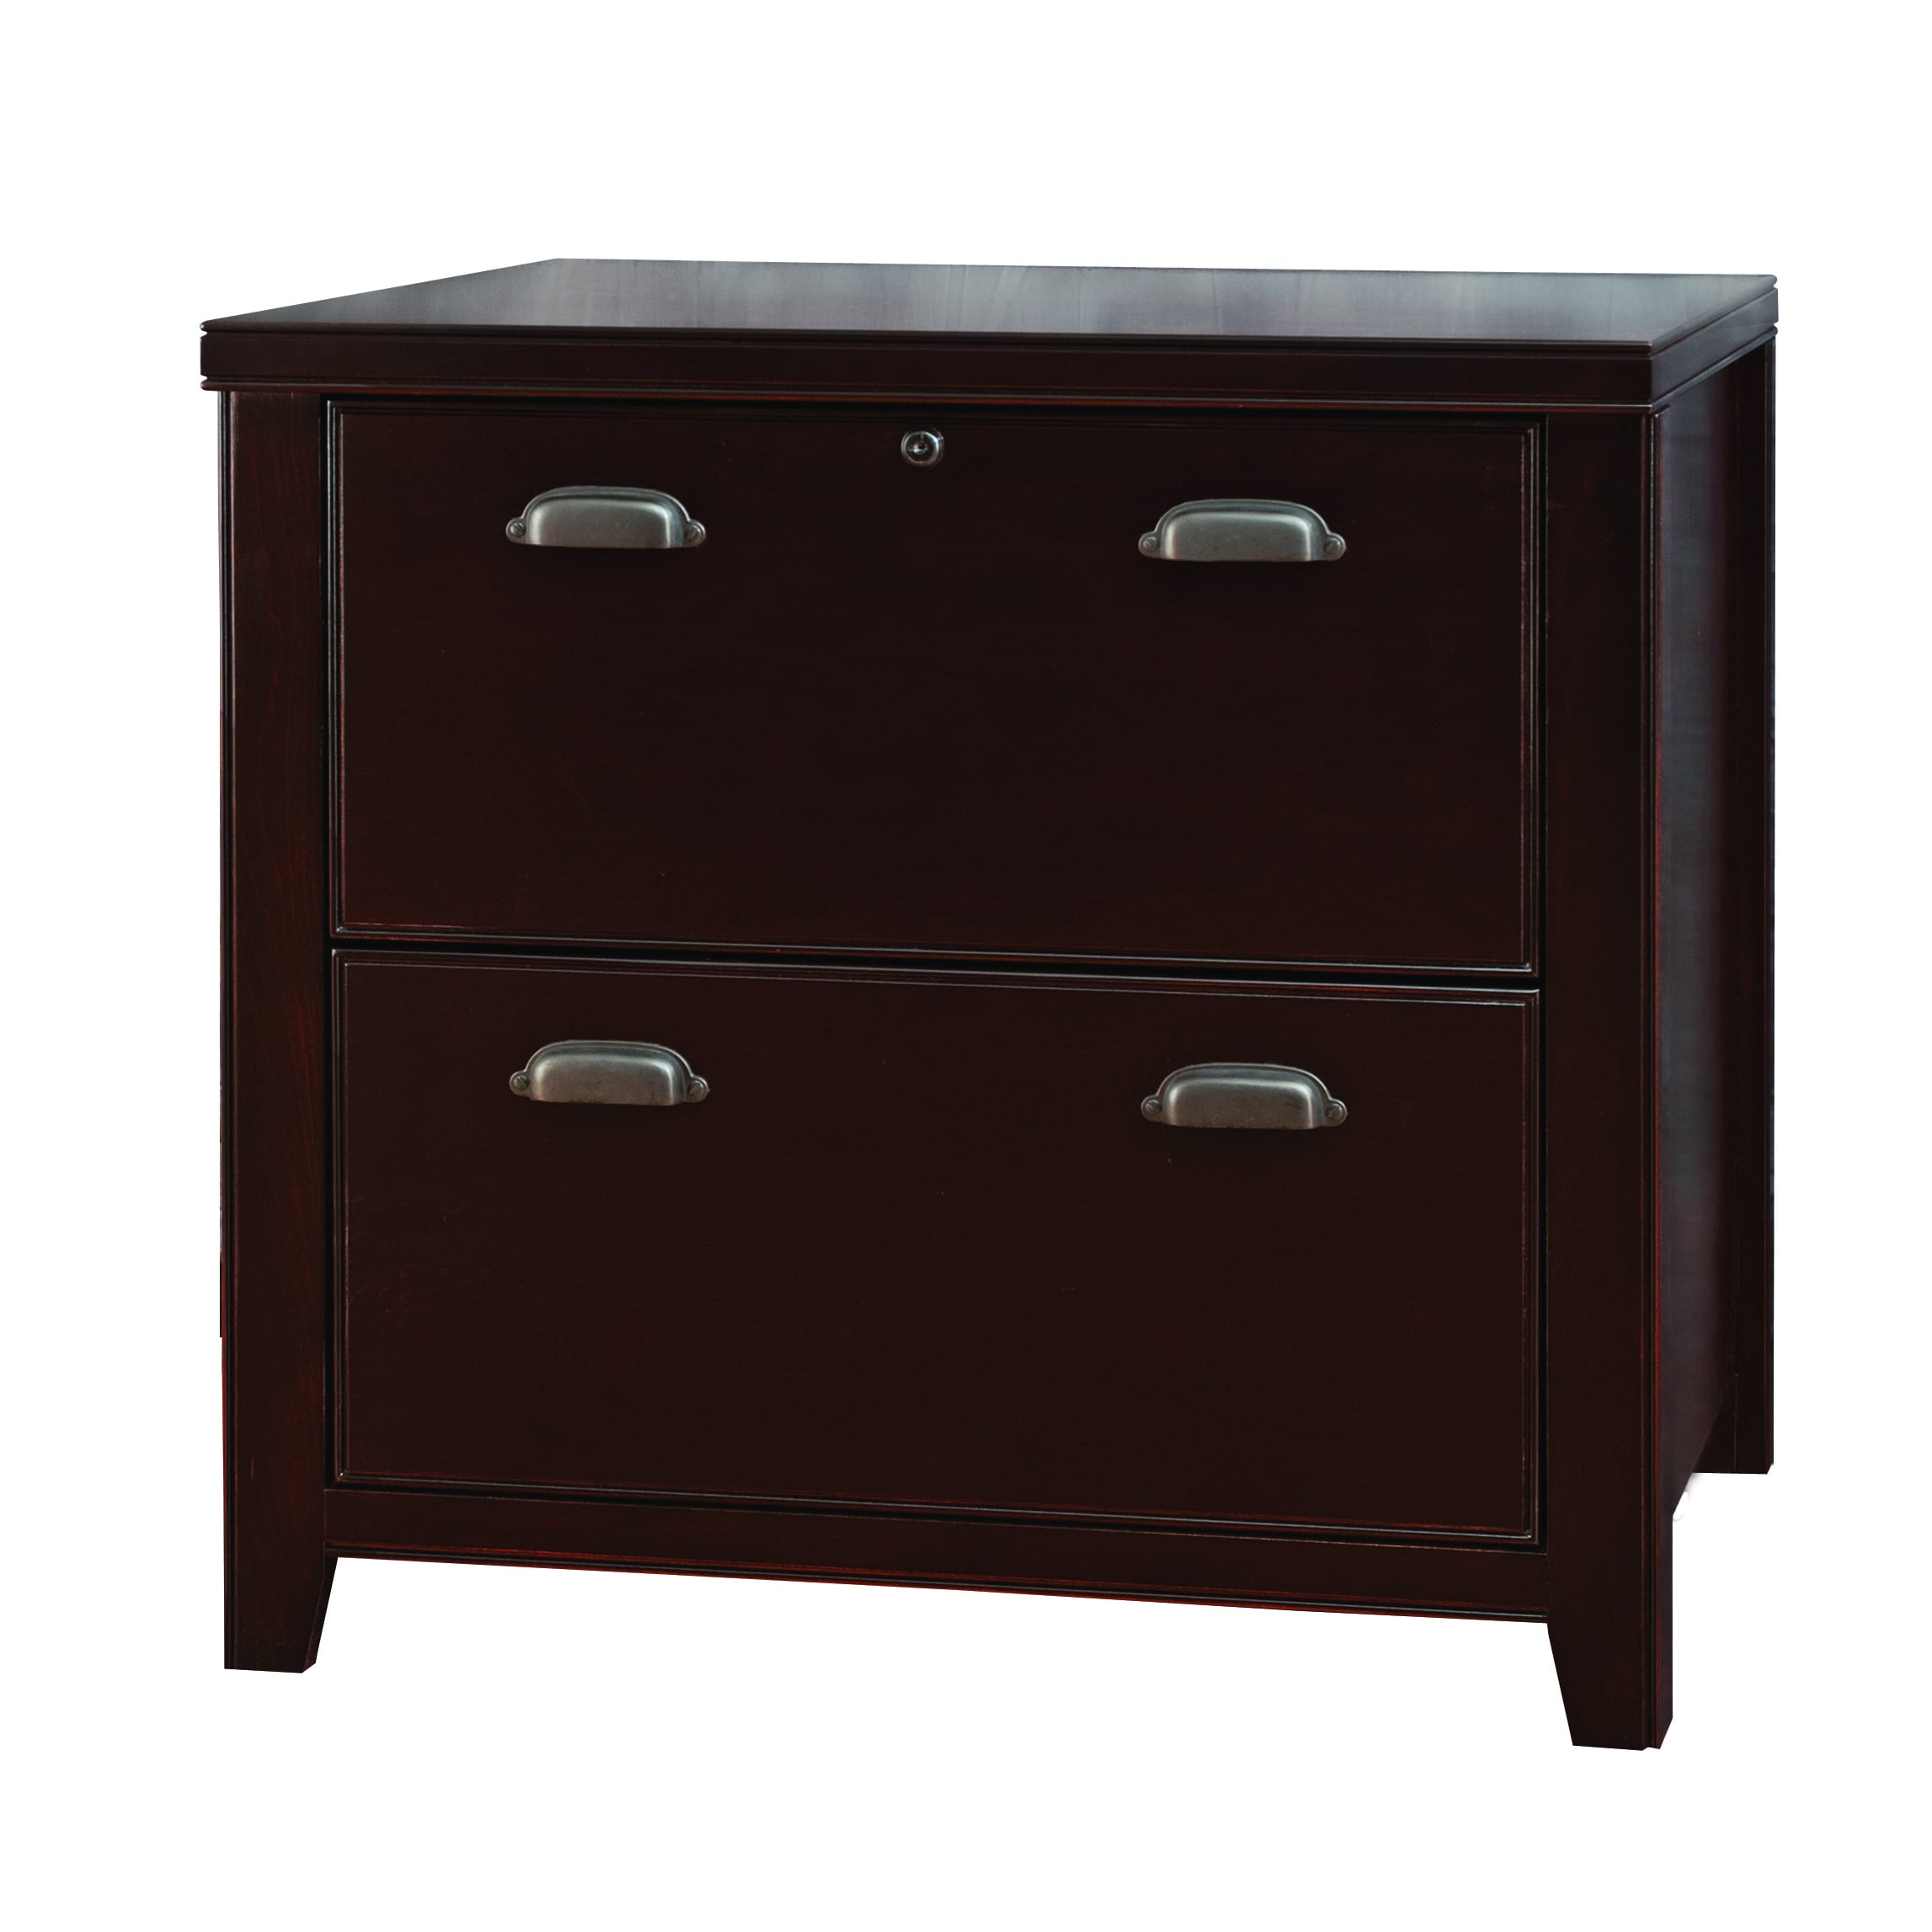 Outstanding Tansley Landing Cherry 2 Drawer Lateral File Cabinet Interior Design Ideas Jittwwsoteloinfo